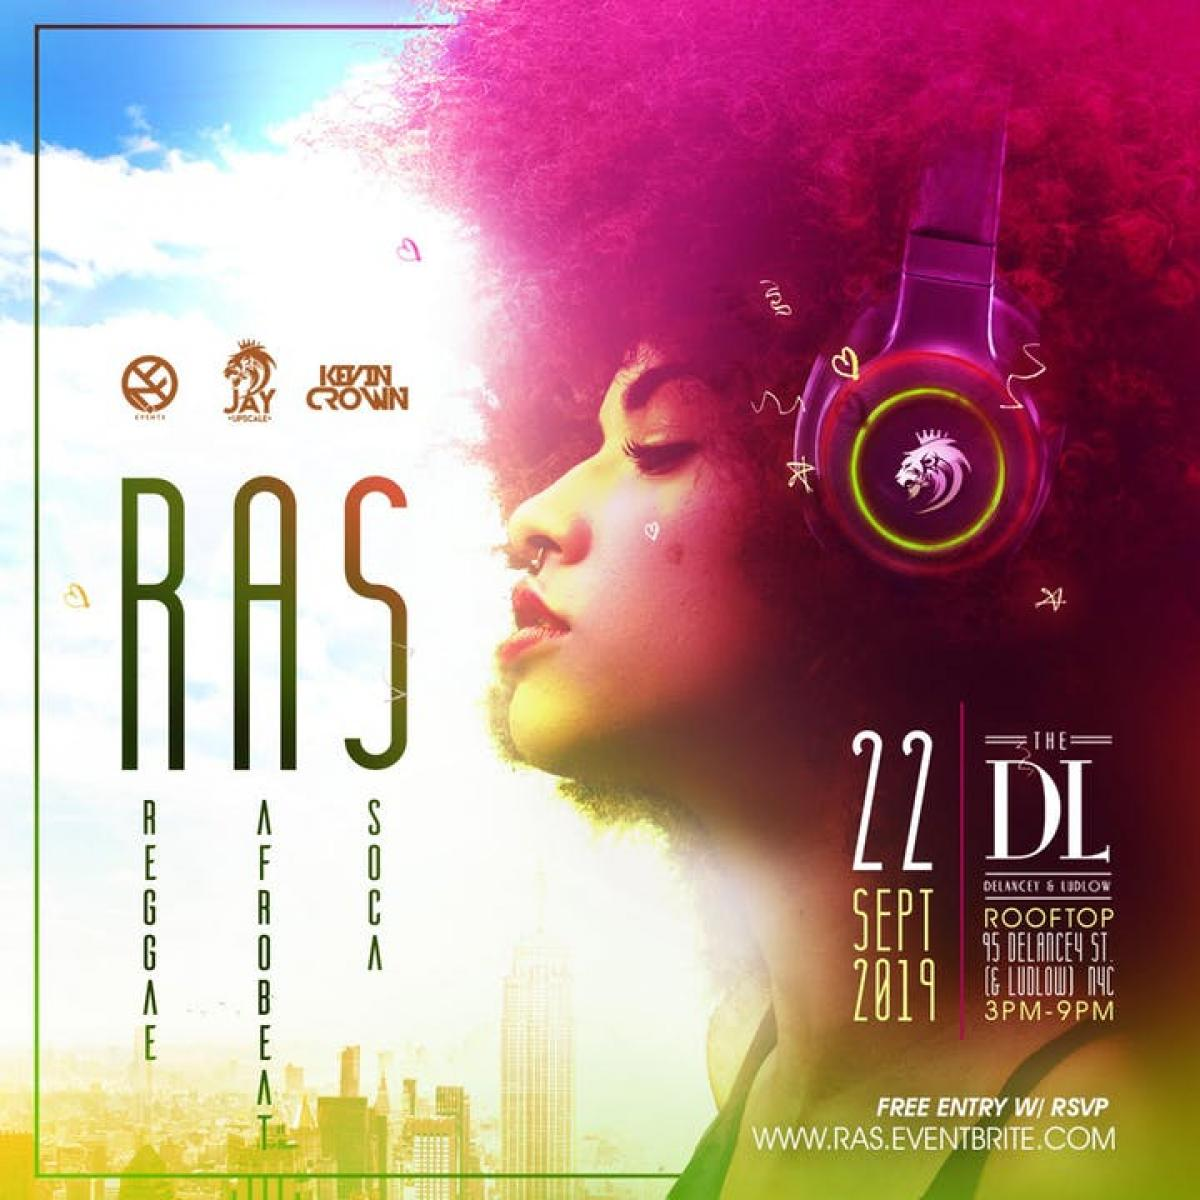 Ras flyer or graphic.